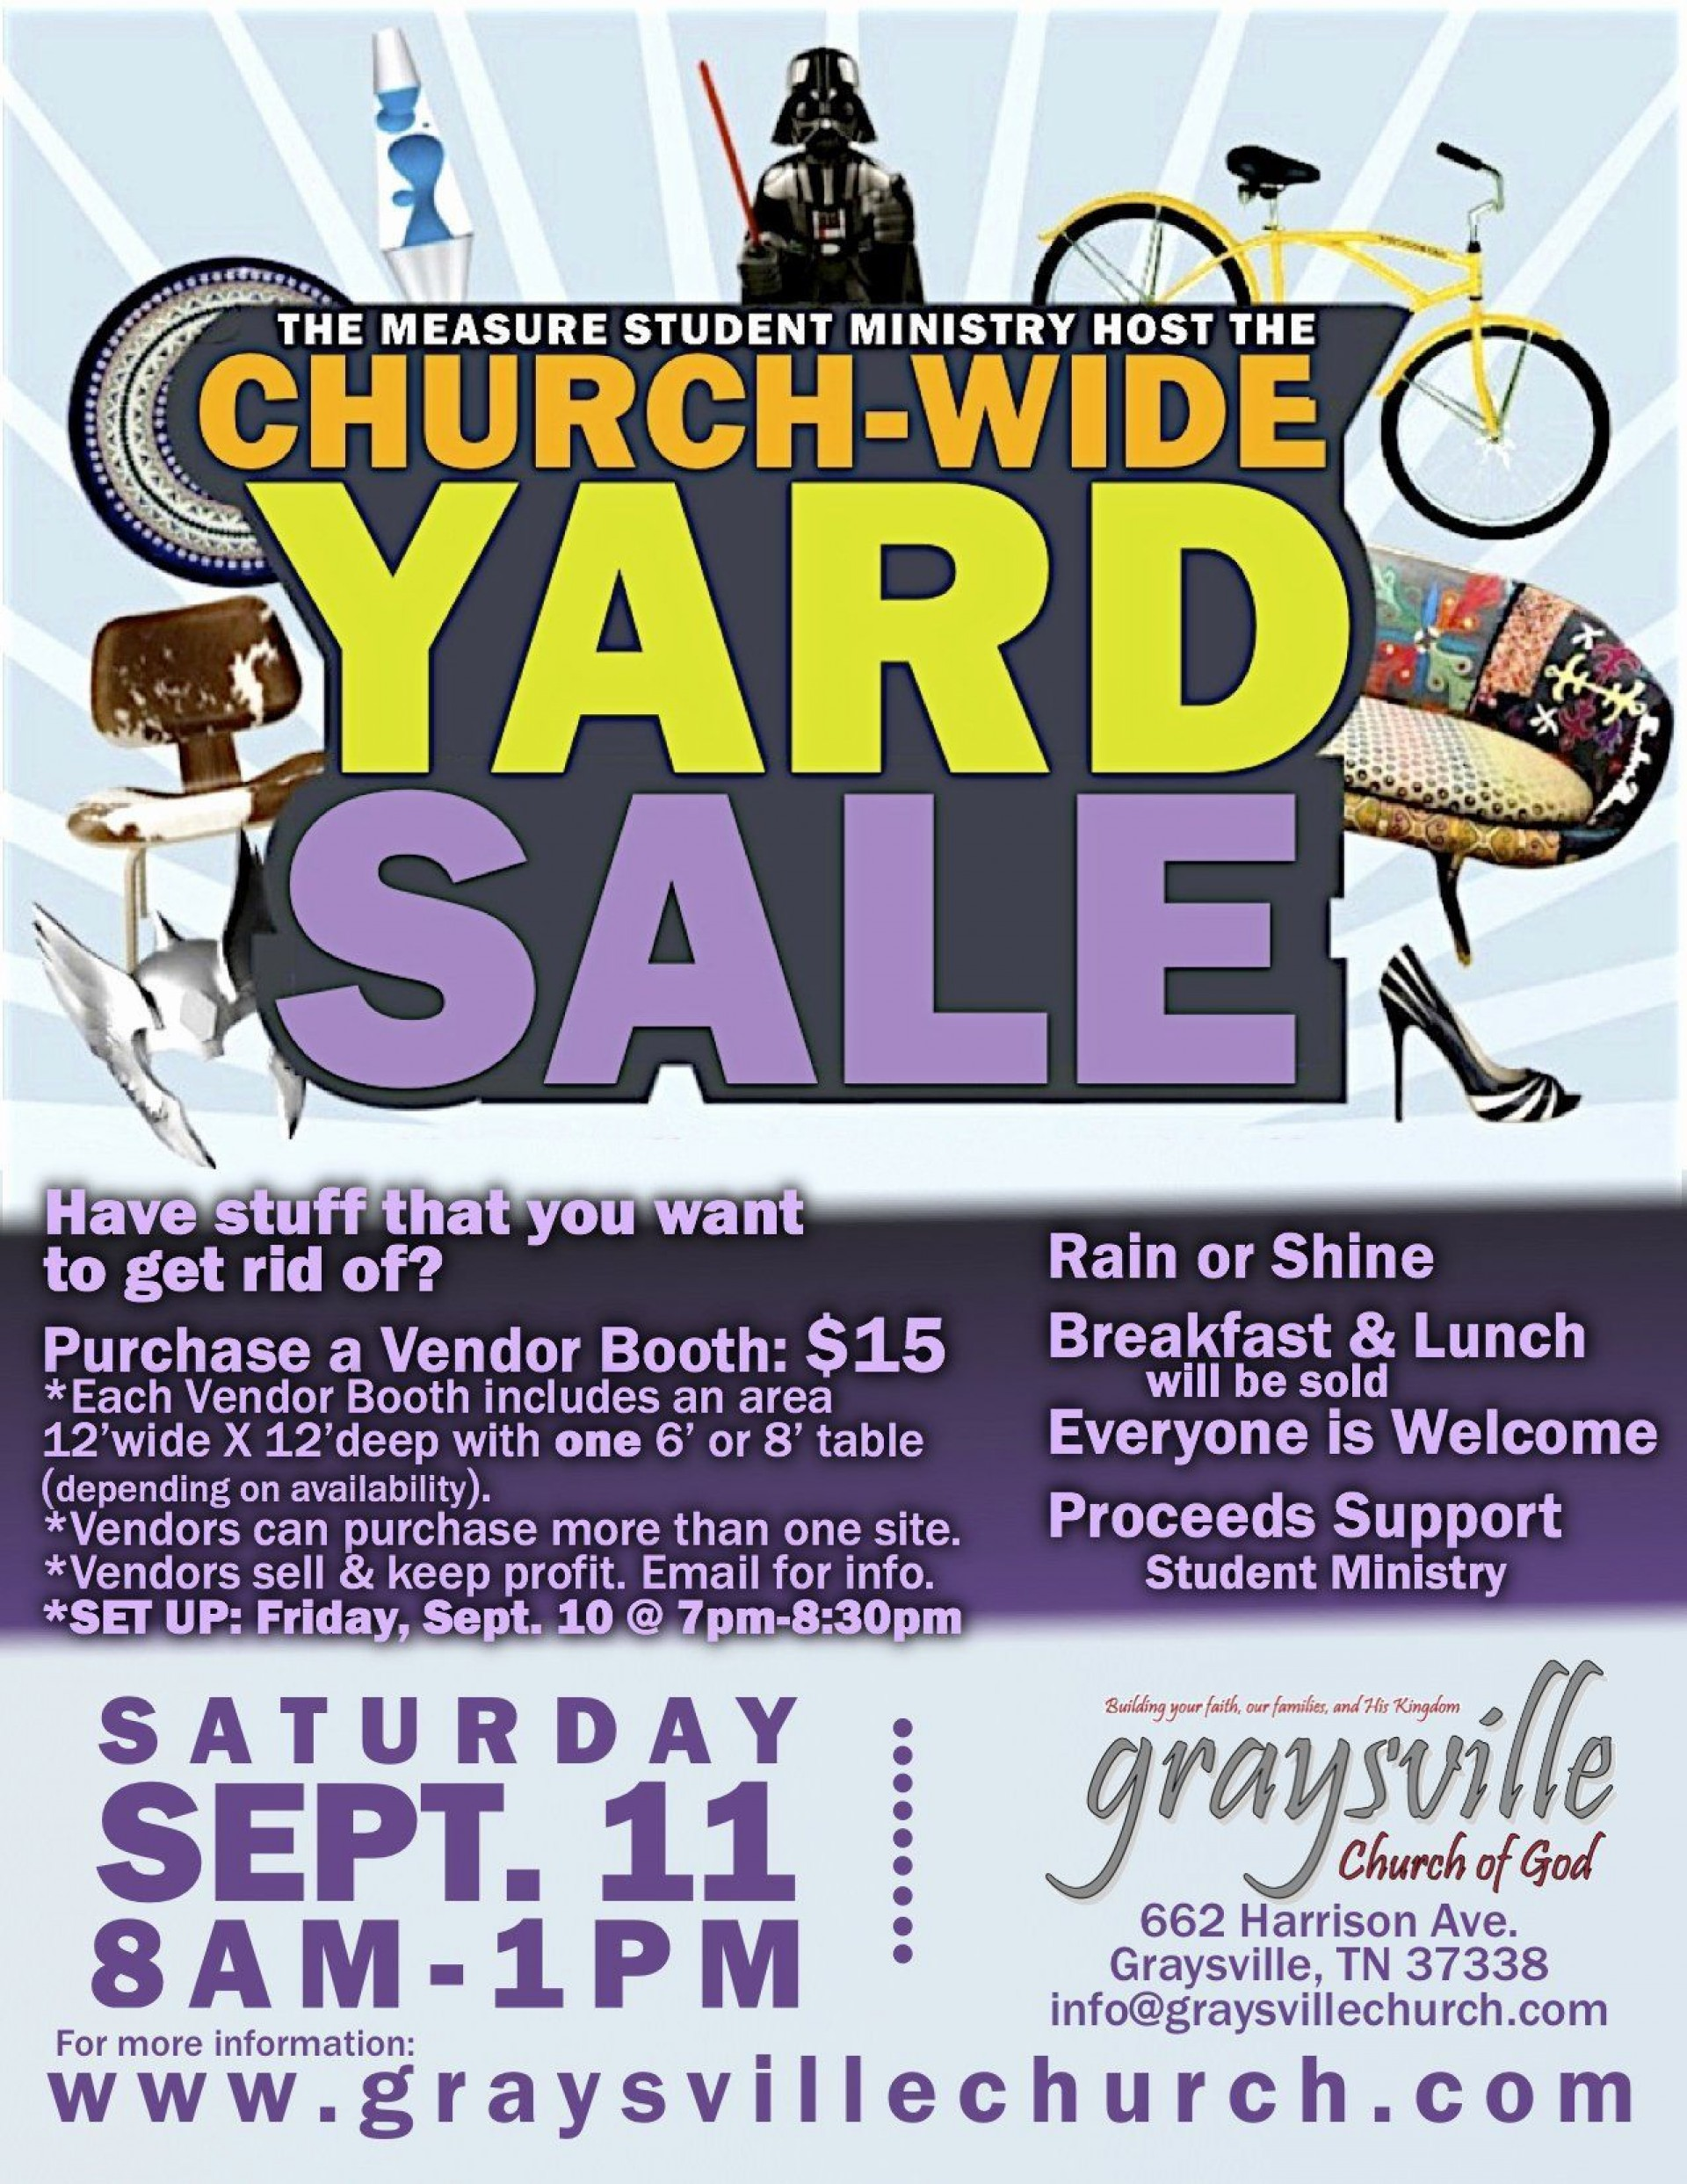 001 Fascinating Yard Sale Flyer Template Design  Free Garage Microsoft Word1920